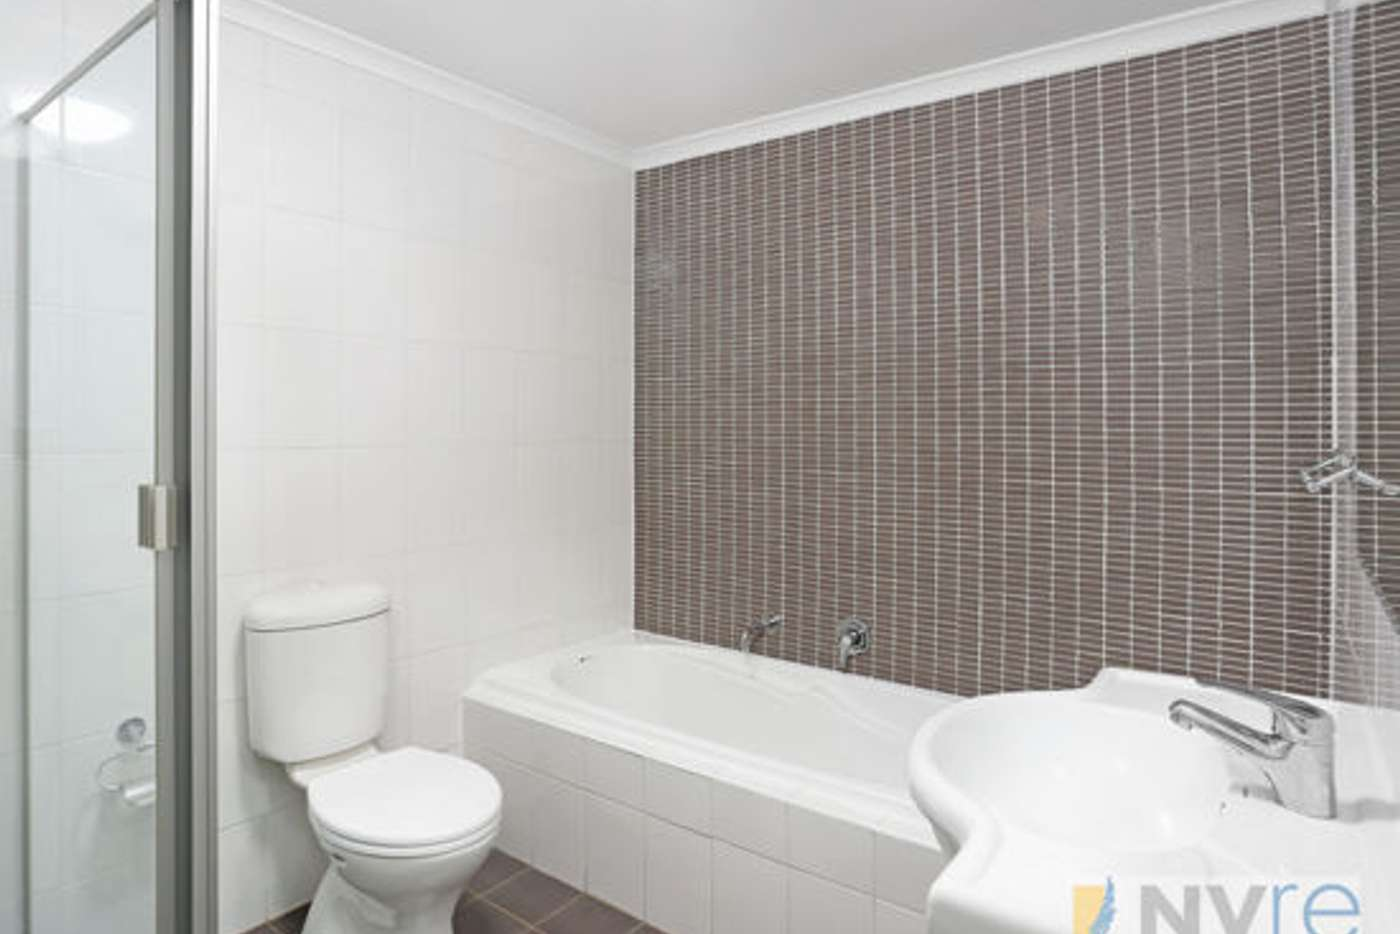 Fifth view of Homely apartment listing, 10/73-75 Deakin Street, Silverwater NSW 2128